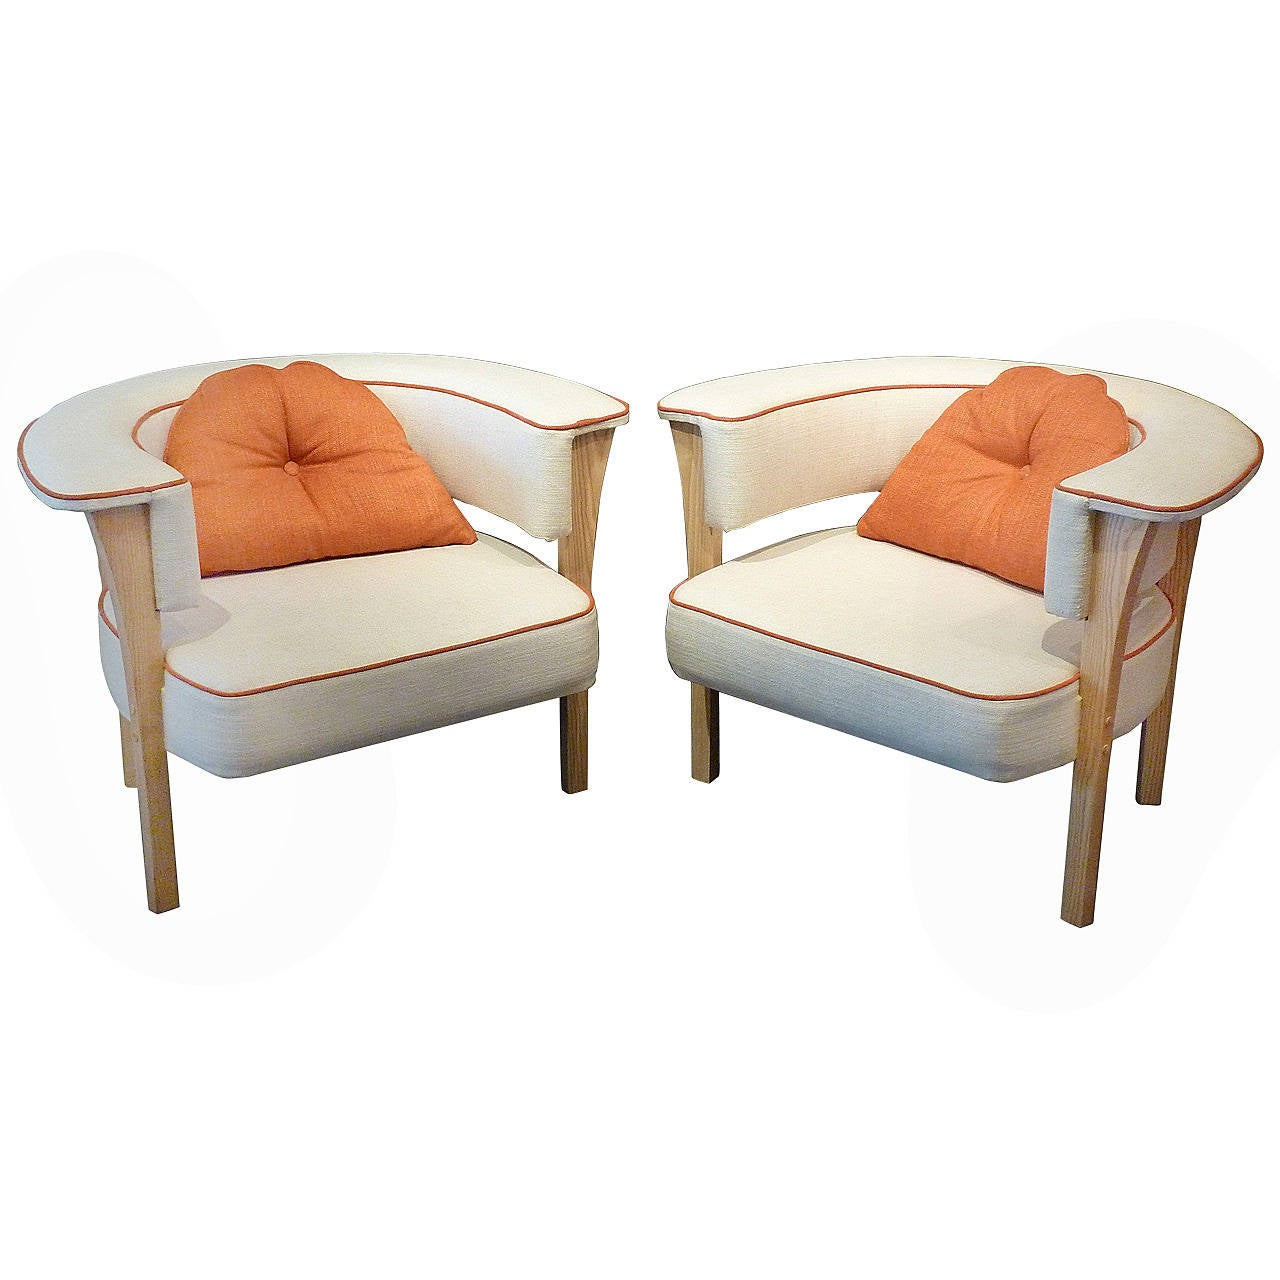 Unusual pair of mid century modern armchairs for sale at for Mid century modern armchairs